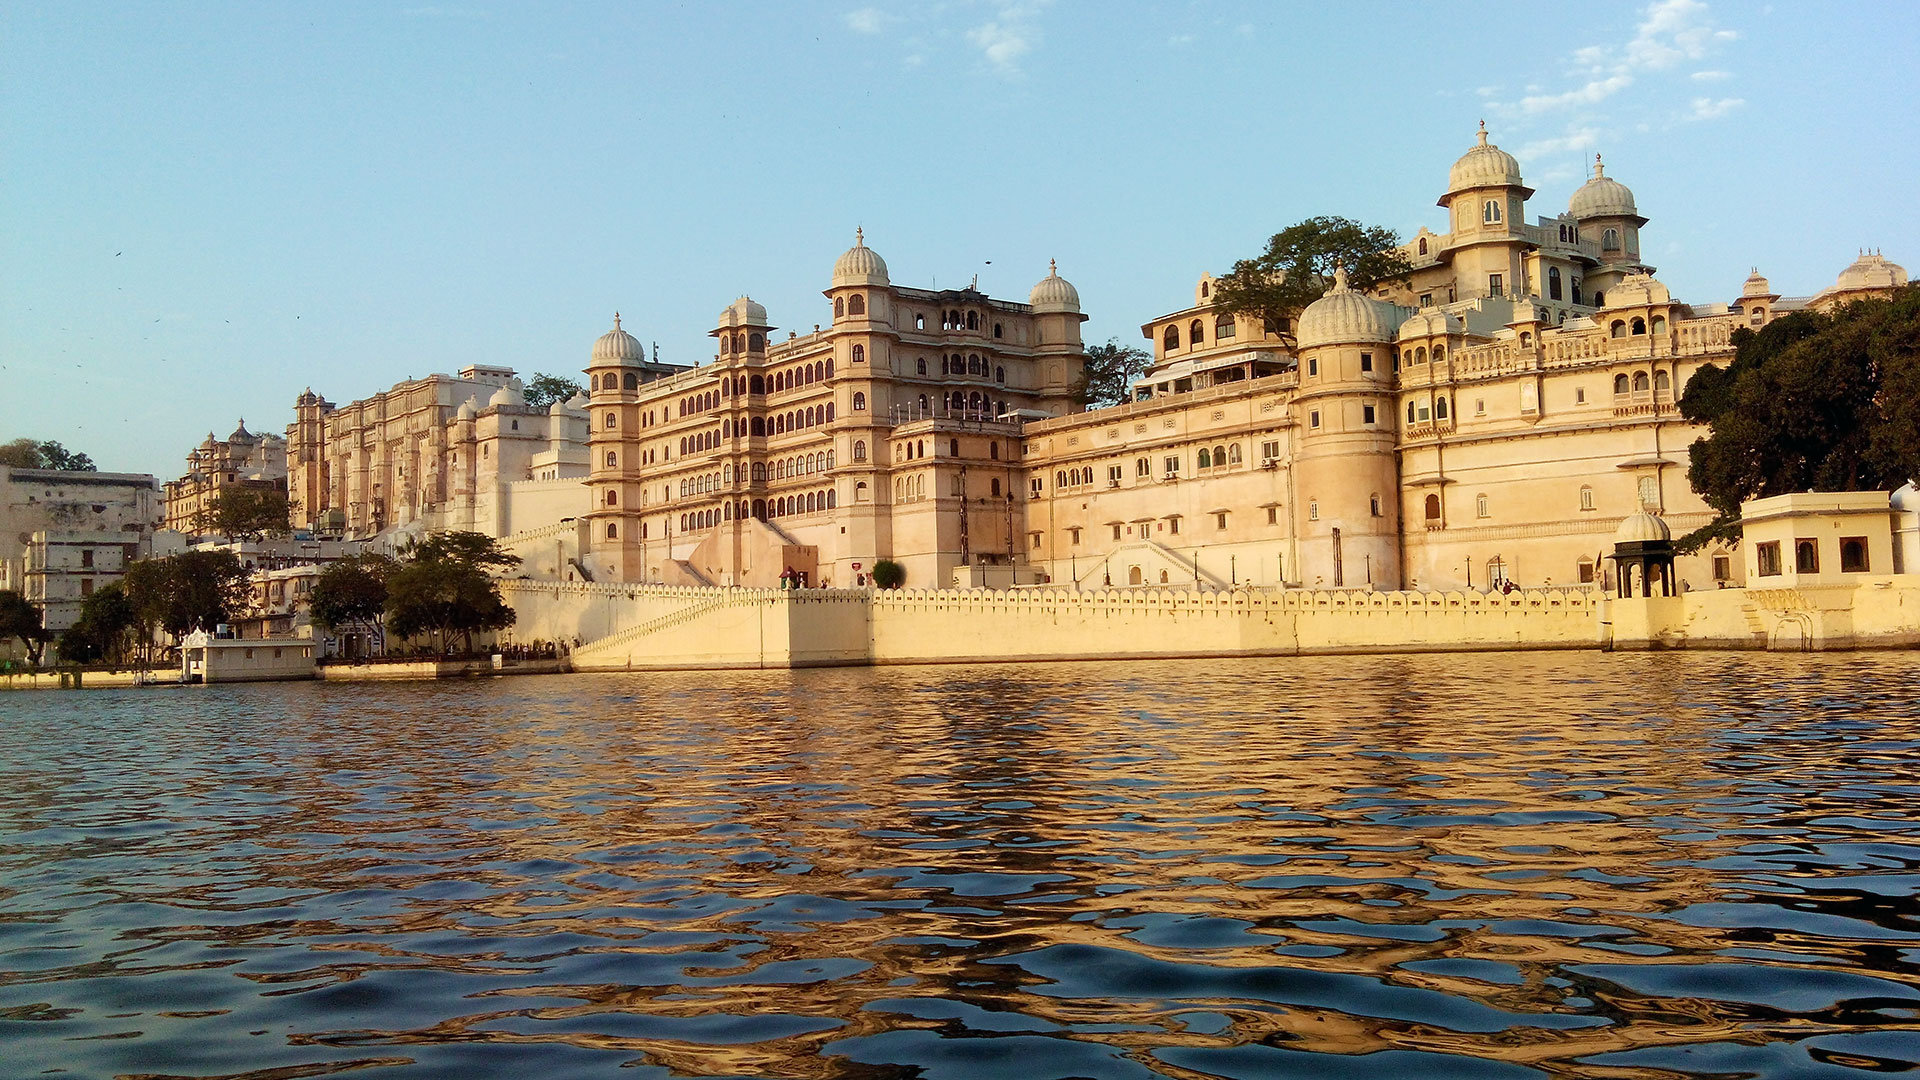 The City Palace, Pichola, Udaipur, Rajasthan | Finest Residences